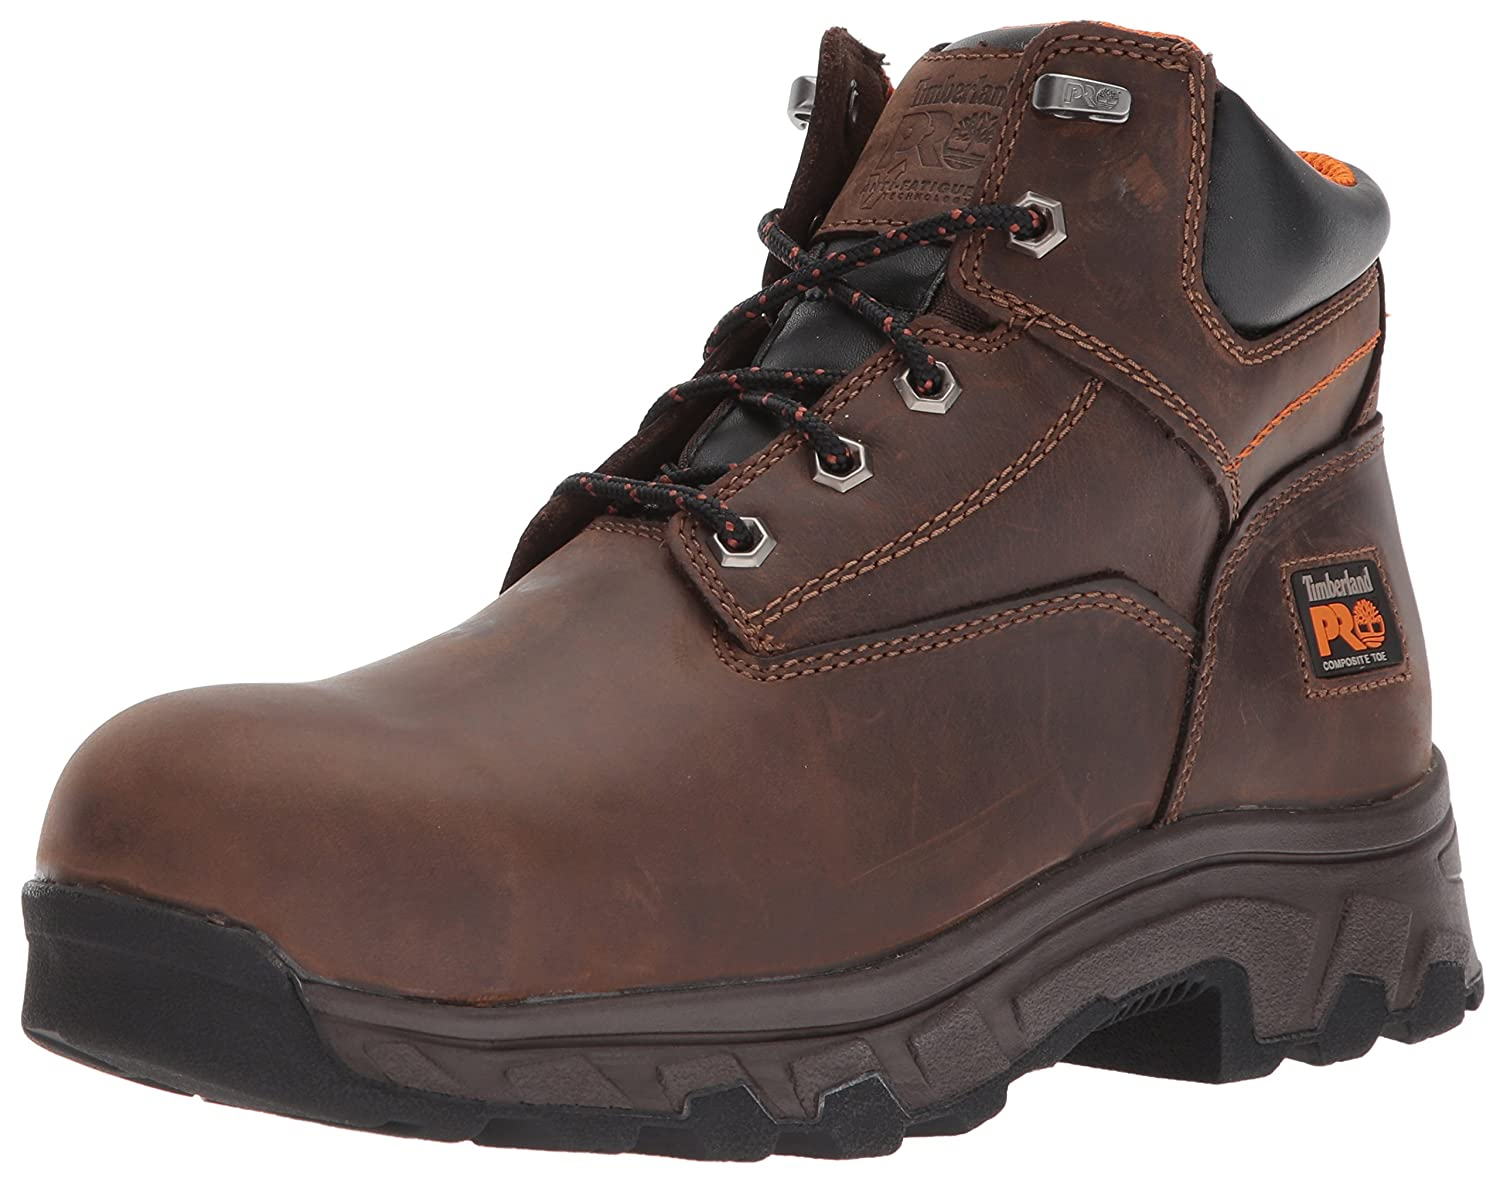 factory outlet hot-selling official clearance prices Timberland PRO Men's Workstead Industrial Boot